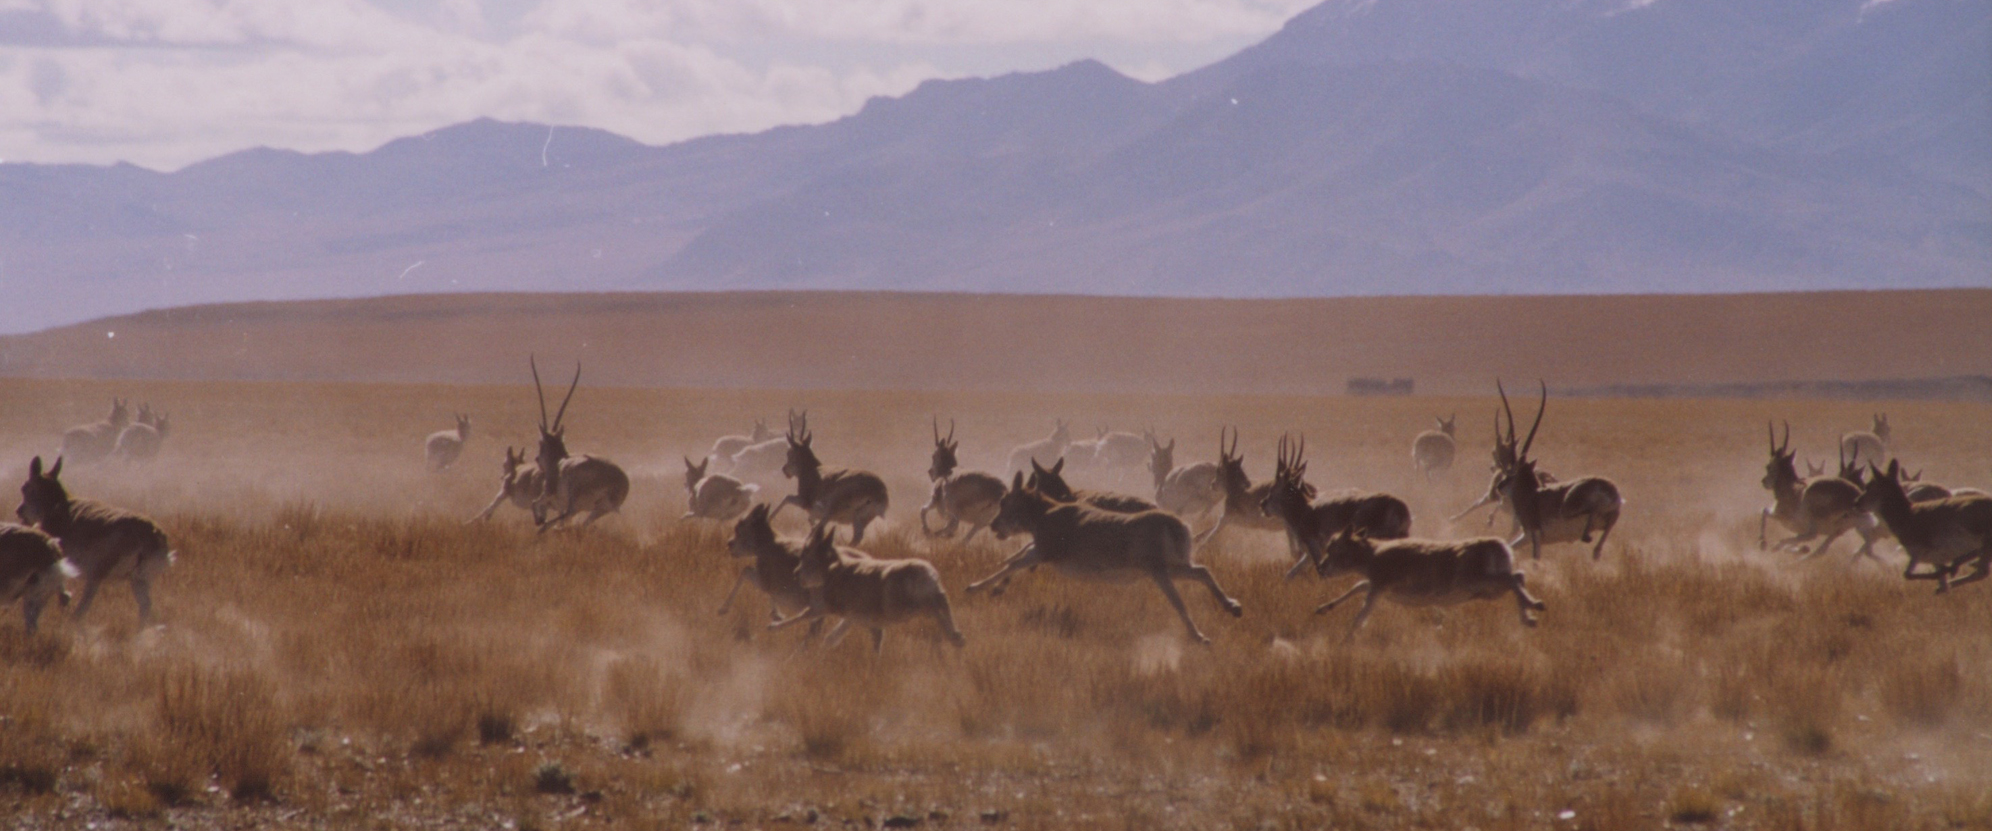 Tibetan antelopes in the Changtang region of northern Tibet. Photo by Matteo Pistono.